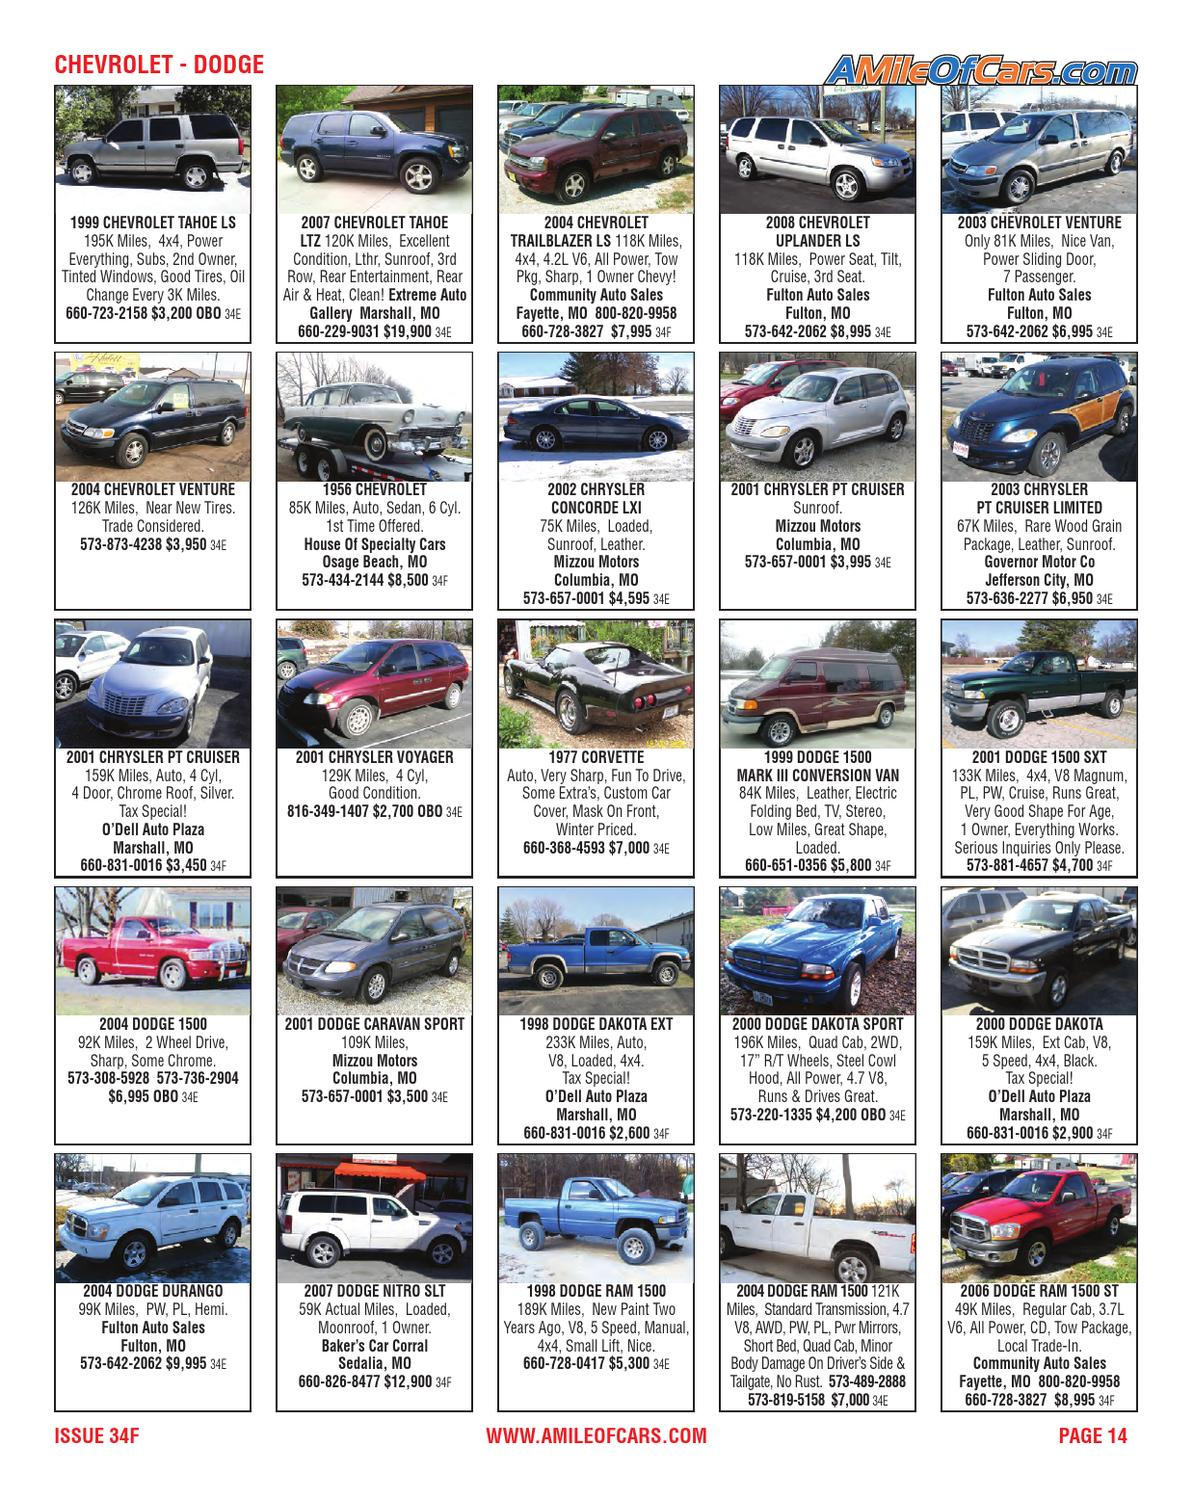 Wheels N Deals, Issue 34F by Maximum Media, Inc  - issuu